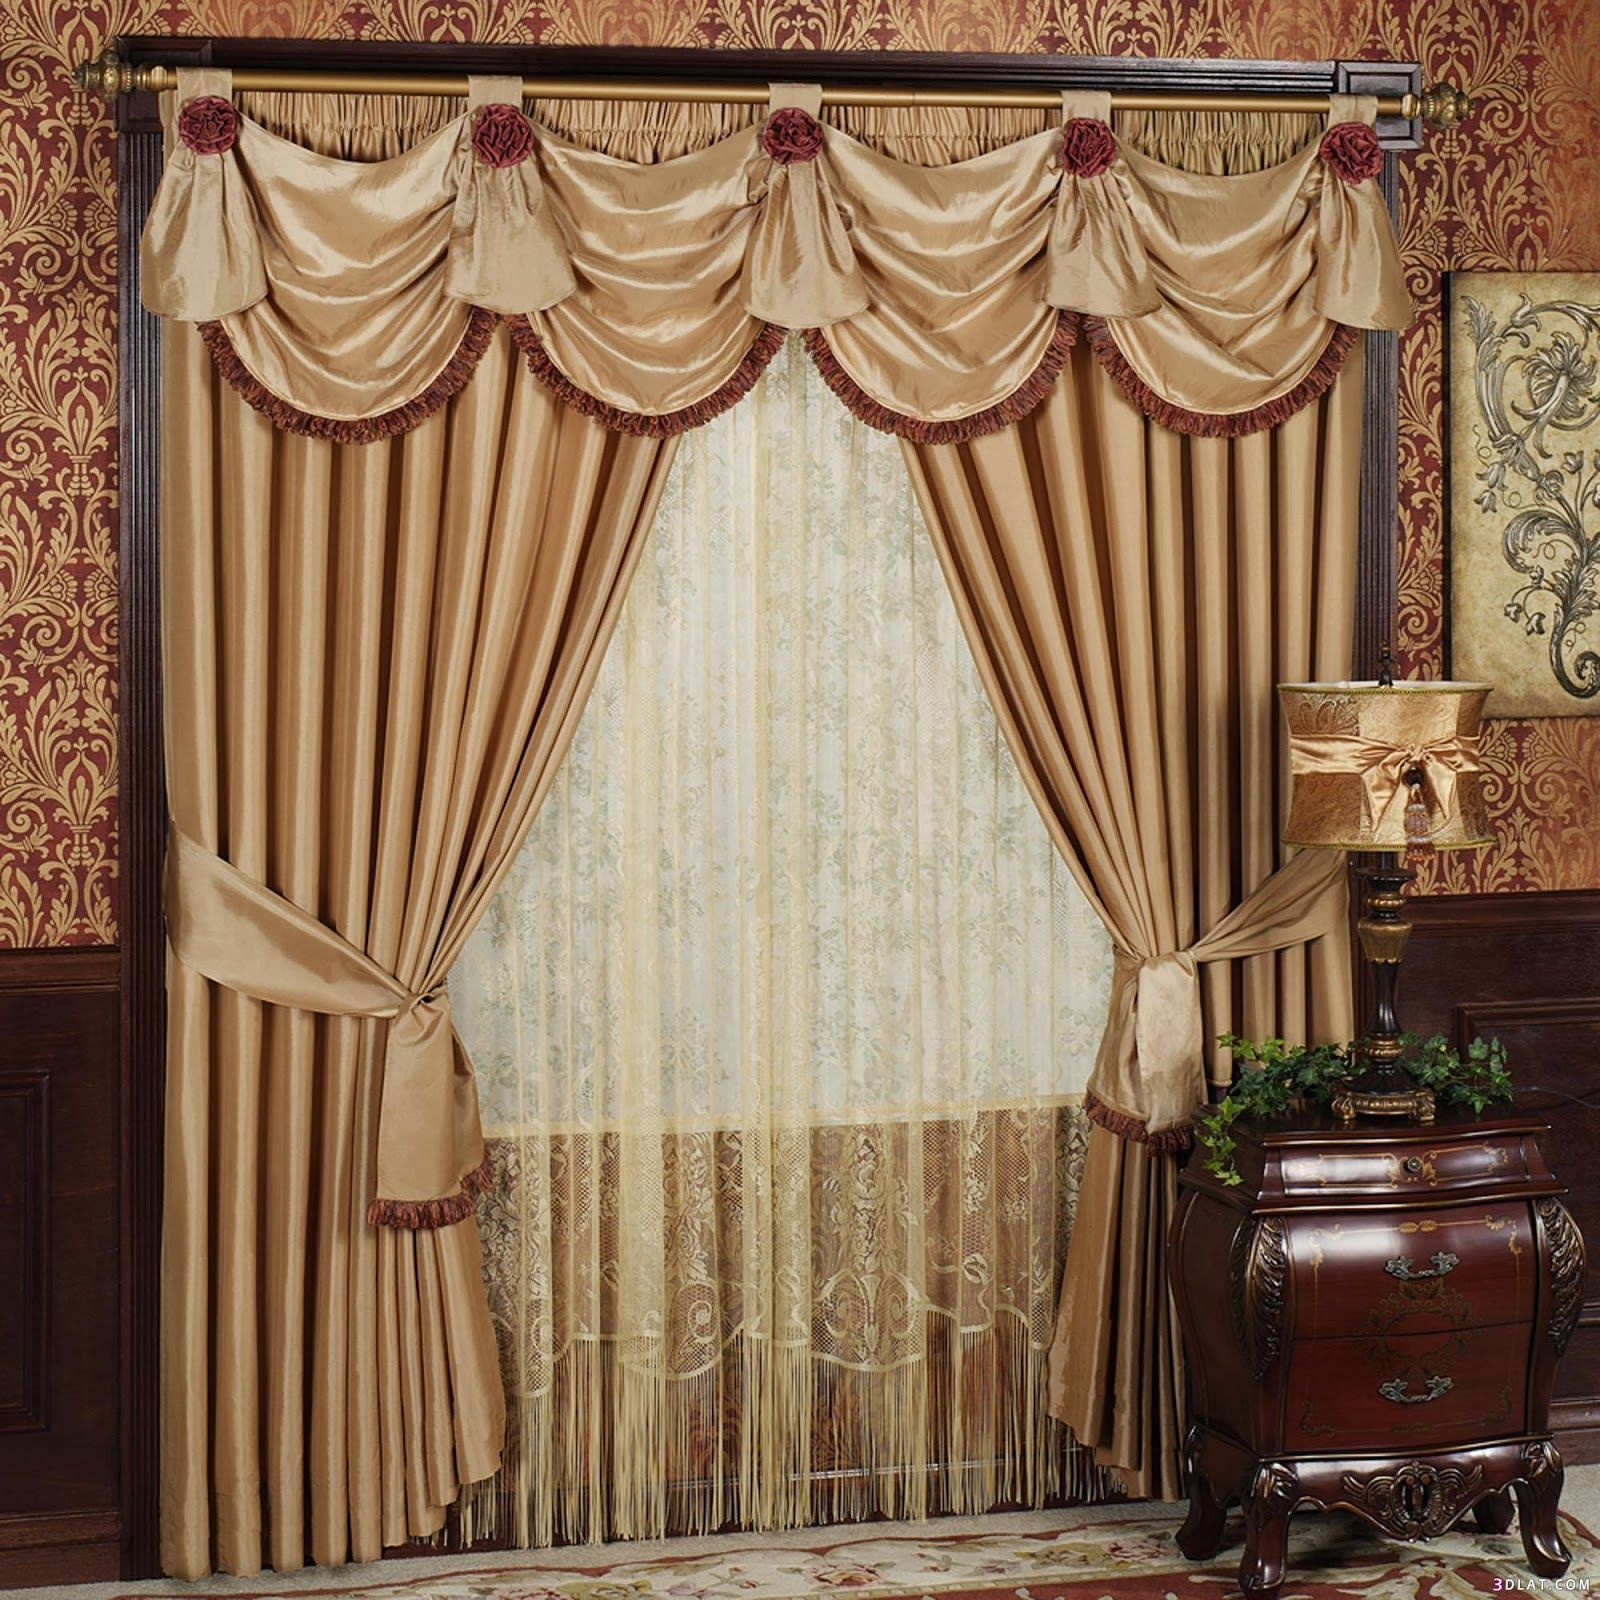 Classic curtain designs for living room - 0 Different Type Of Curtain Stitching Ideas And Designs 12